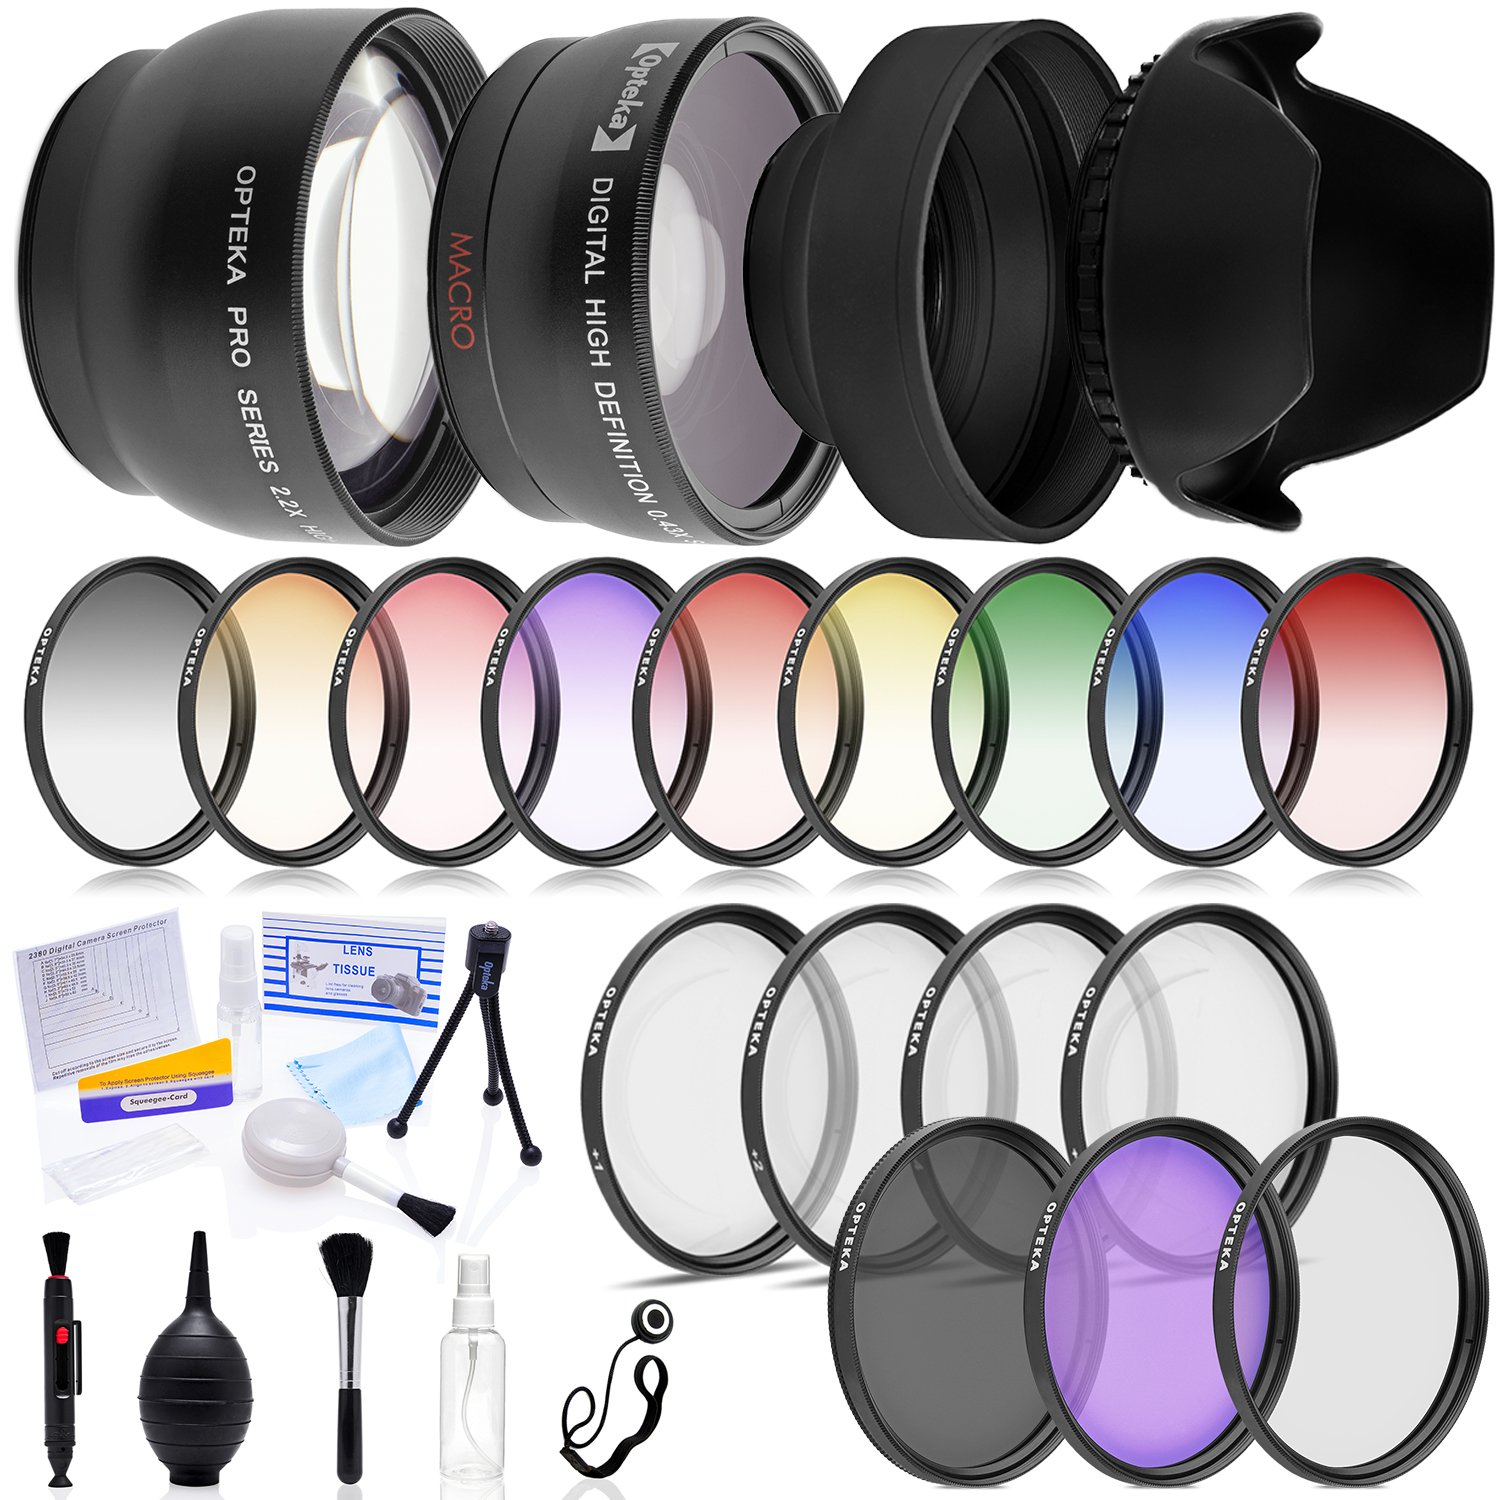 Multi-Piece Advanced Lens Package For The Nikon D100 D200 D300 D300S D700 D7000 D7100 D3000 D3100 D3200 D5000 D5100 D5200 D5300 D40 D40X D50 D60 D70 D90 D80 Includes Deluxe Lens and Filter Kit by Opteka